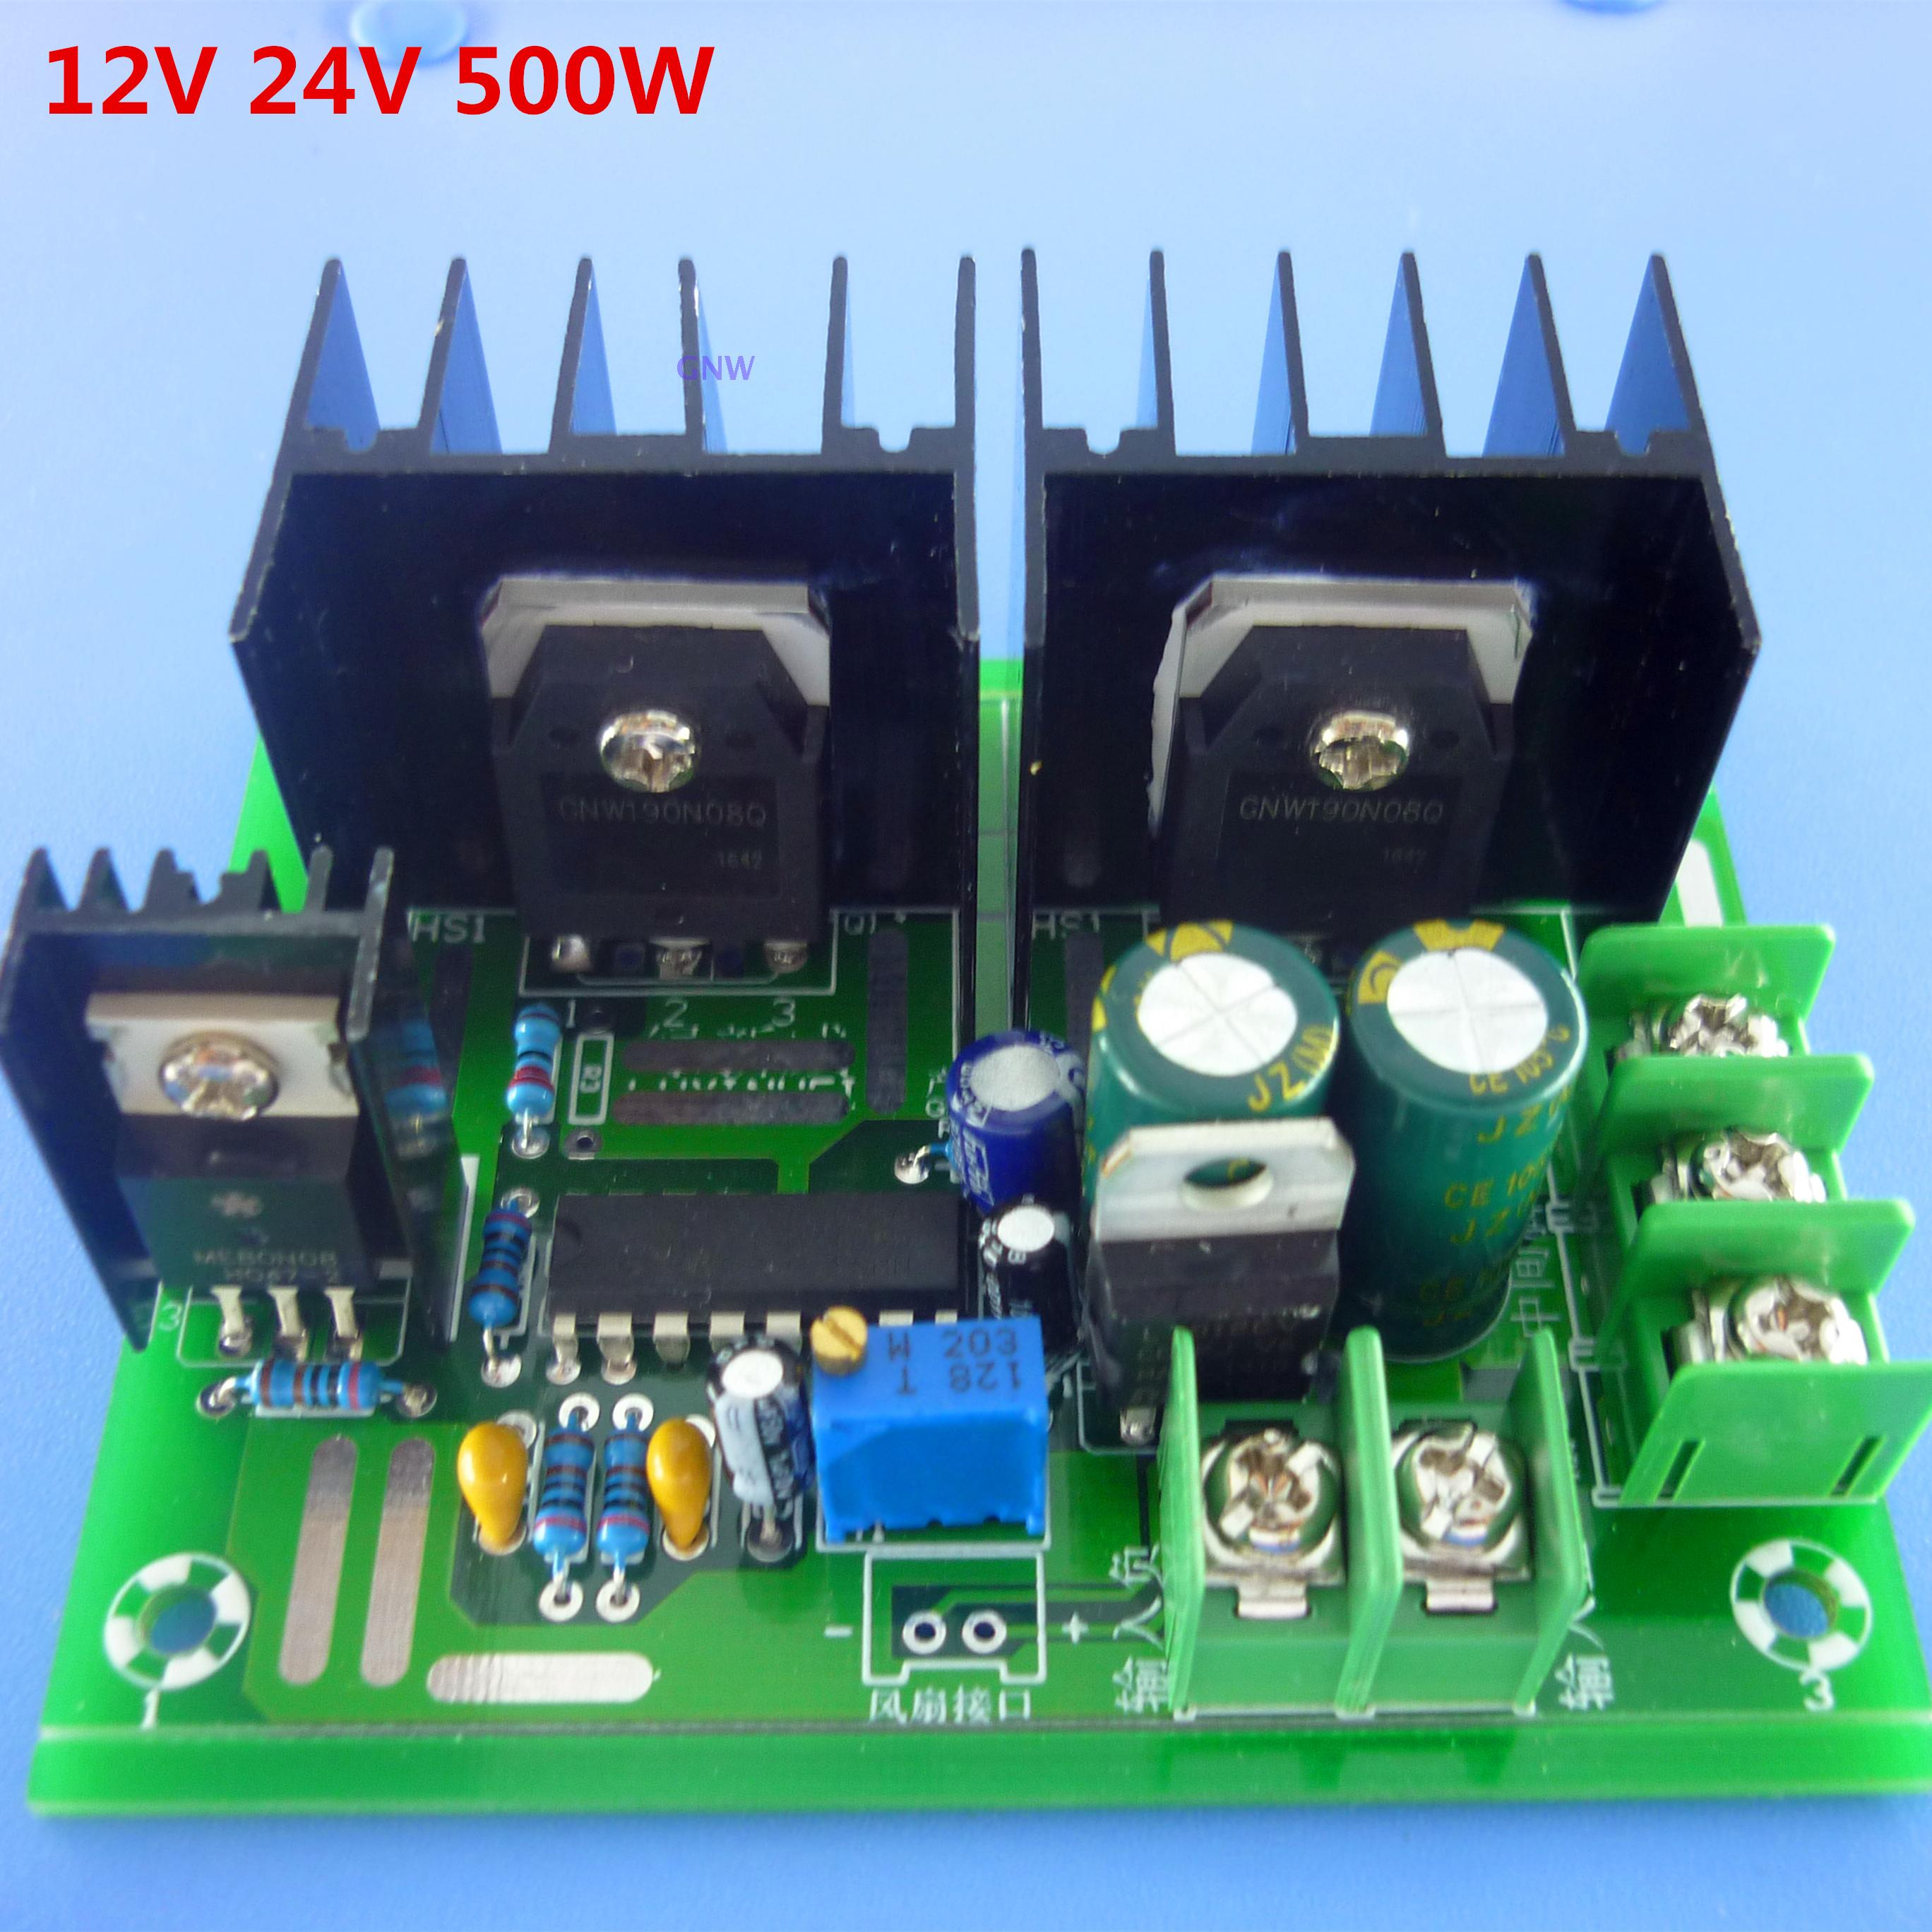 Low frequency inverter, 50HZ core transformer, inverter drive board, power frequency inverter drive circuit board inverter drive board power frequency transformer driver board dc12v to ac220v home inverter drive board